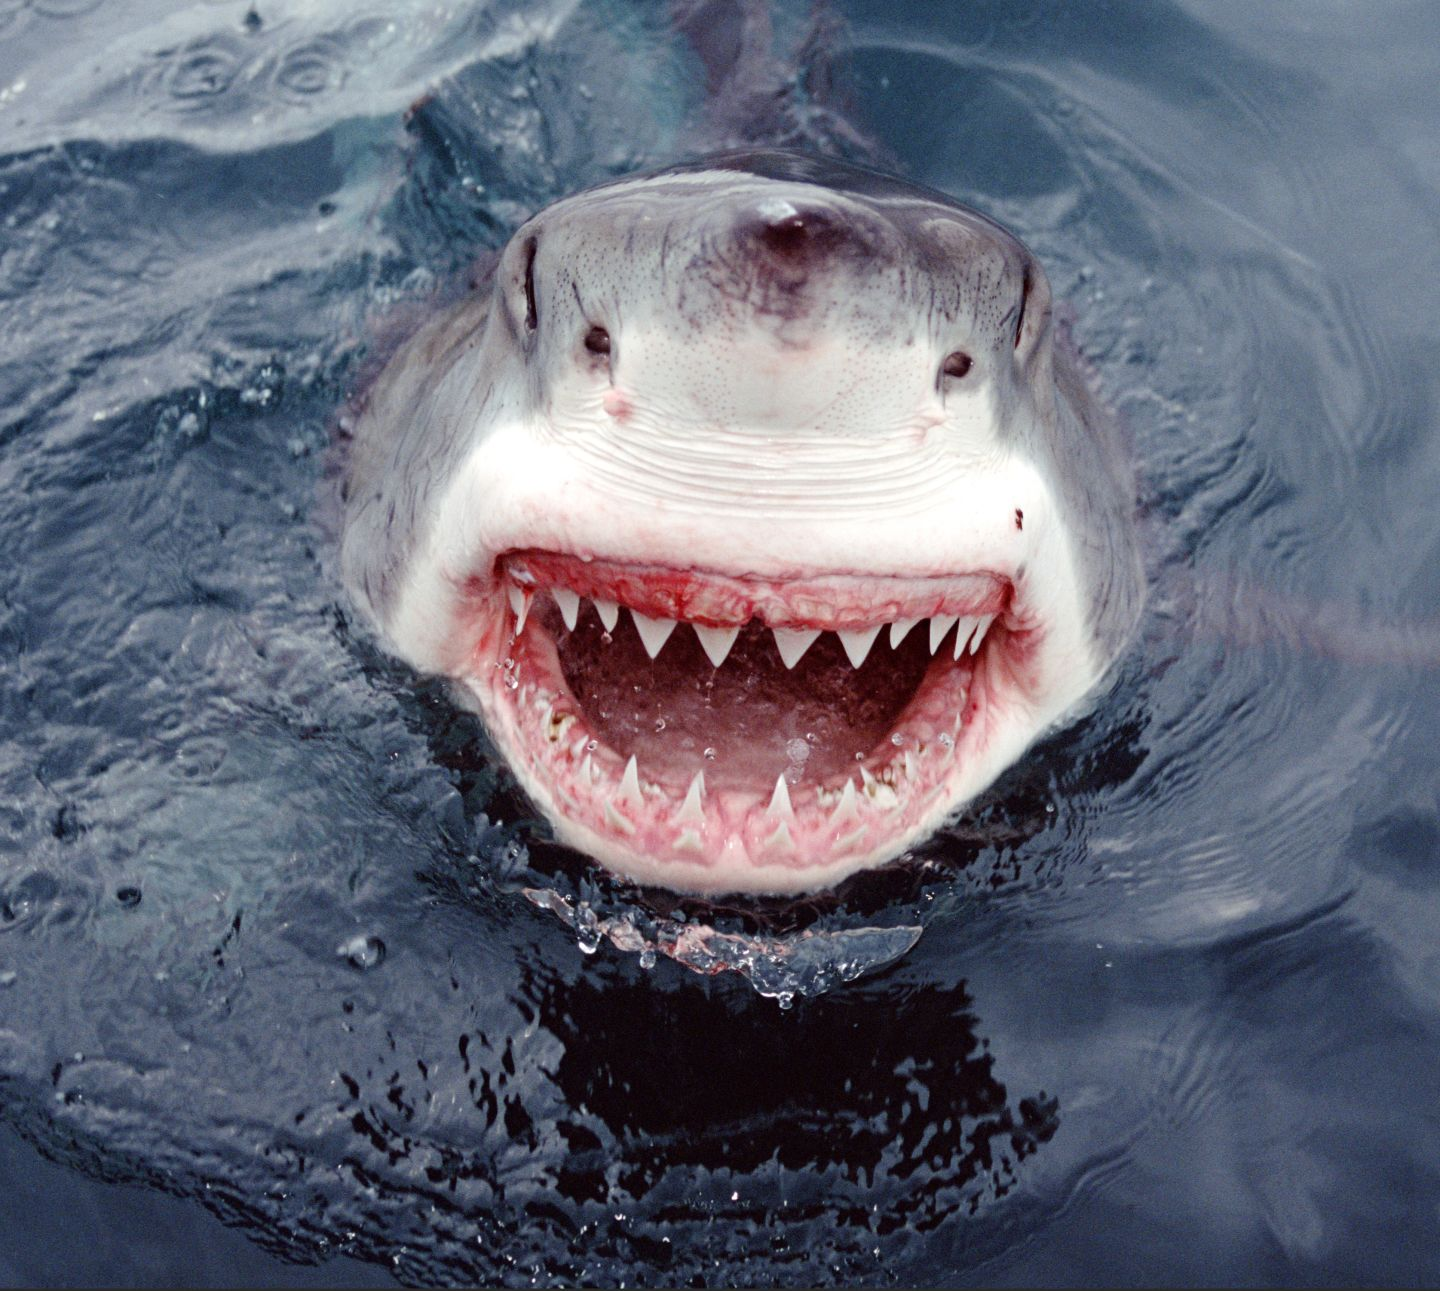 Shark Mouth Picture 62